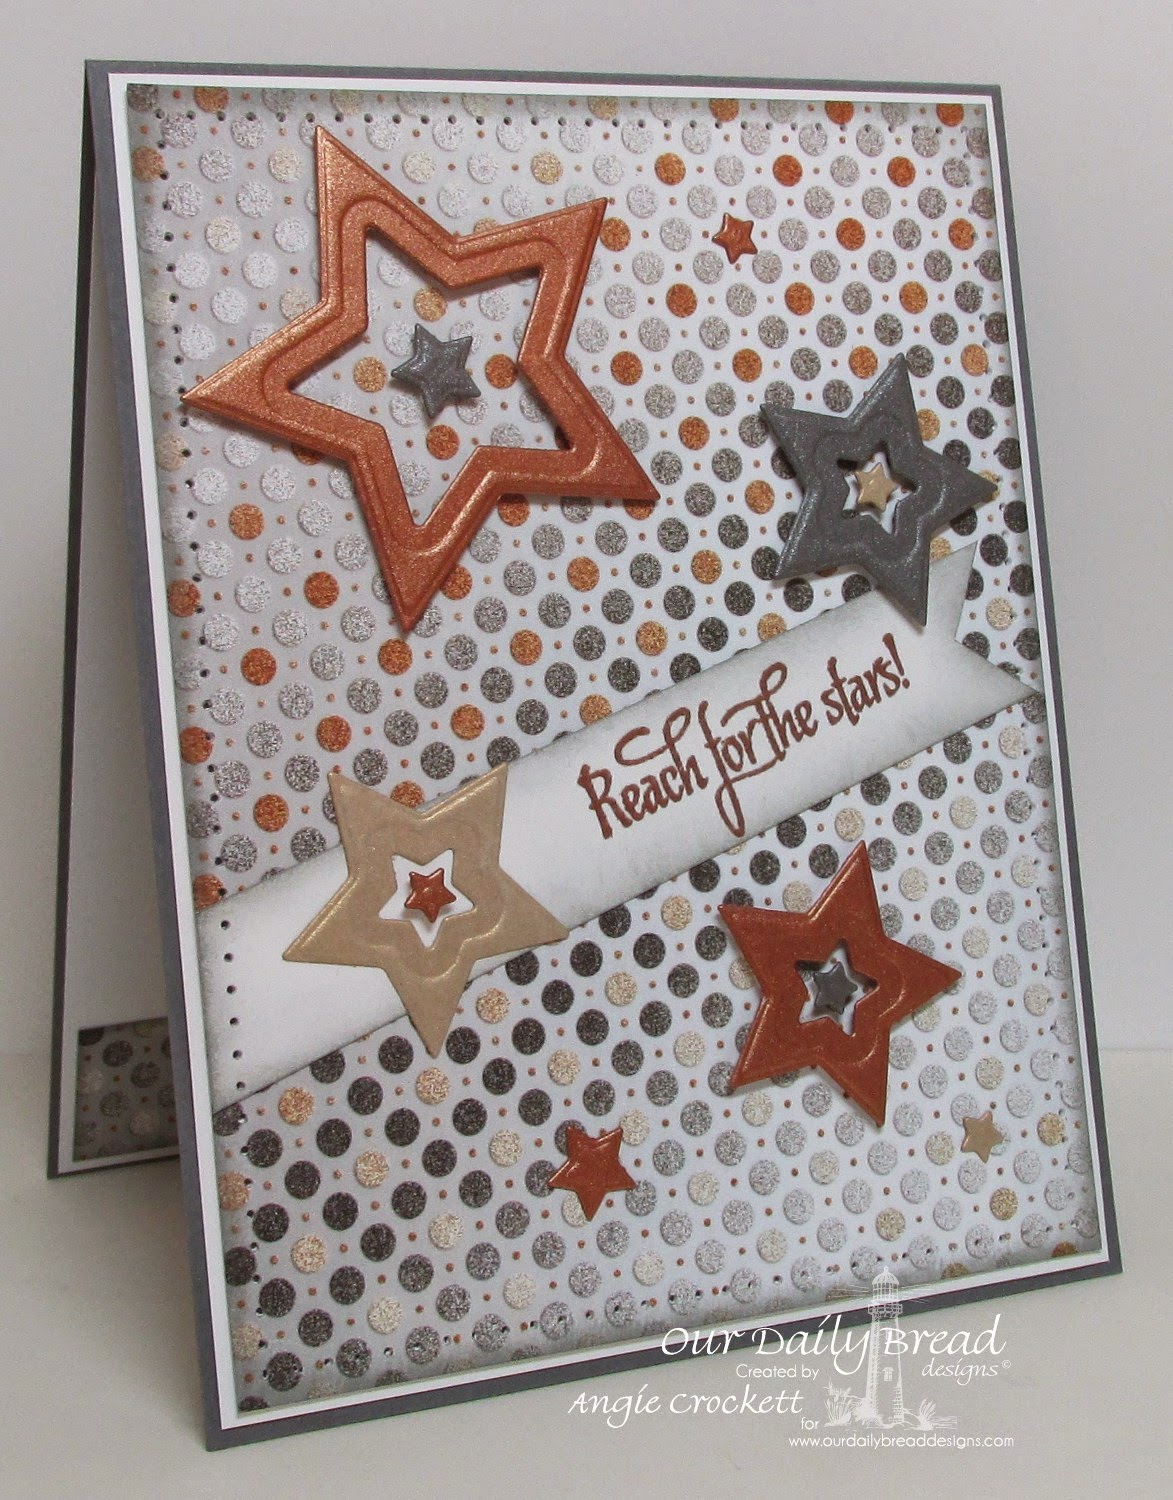 ODBD Reach for the Stars, ODBD Custom Sparkling Stars Dies, ODBD Winter Collection 2014 Designer Paper Pack, Card Designer Angie Crockett